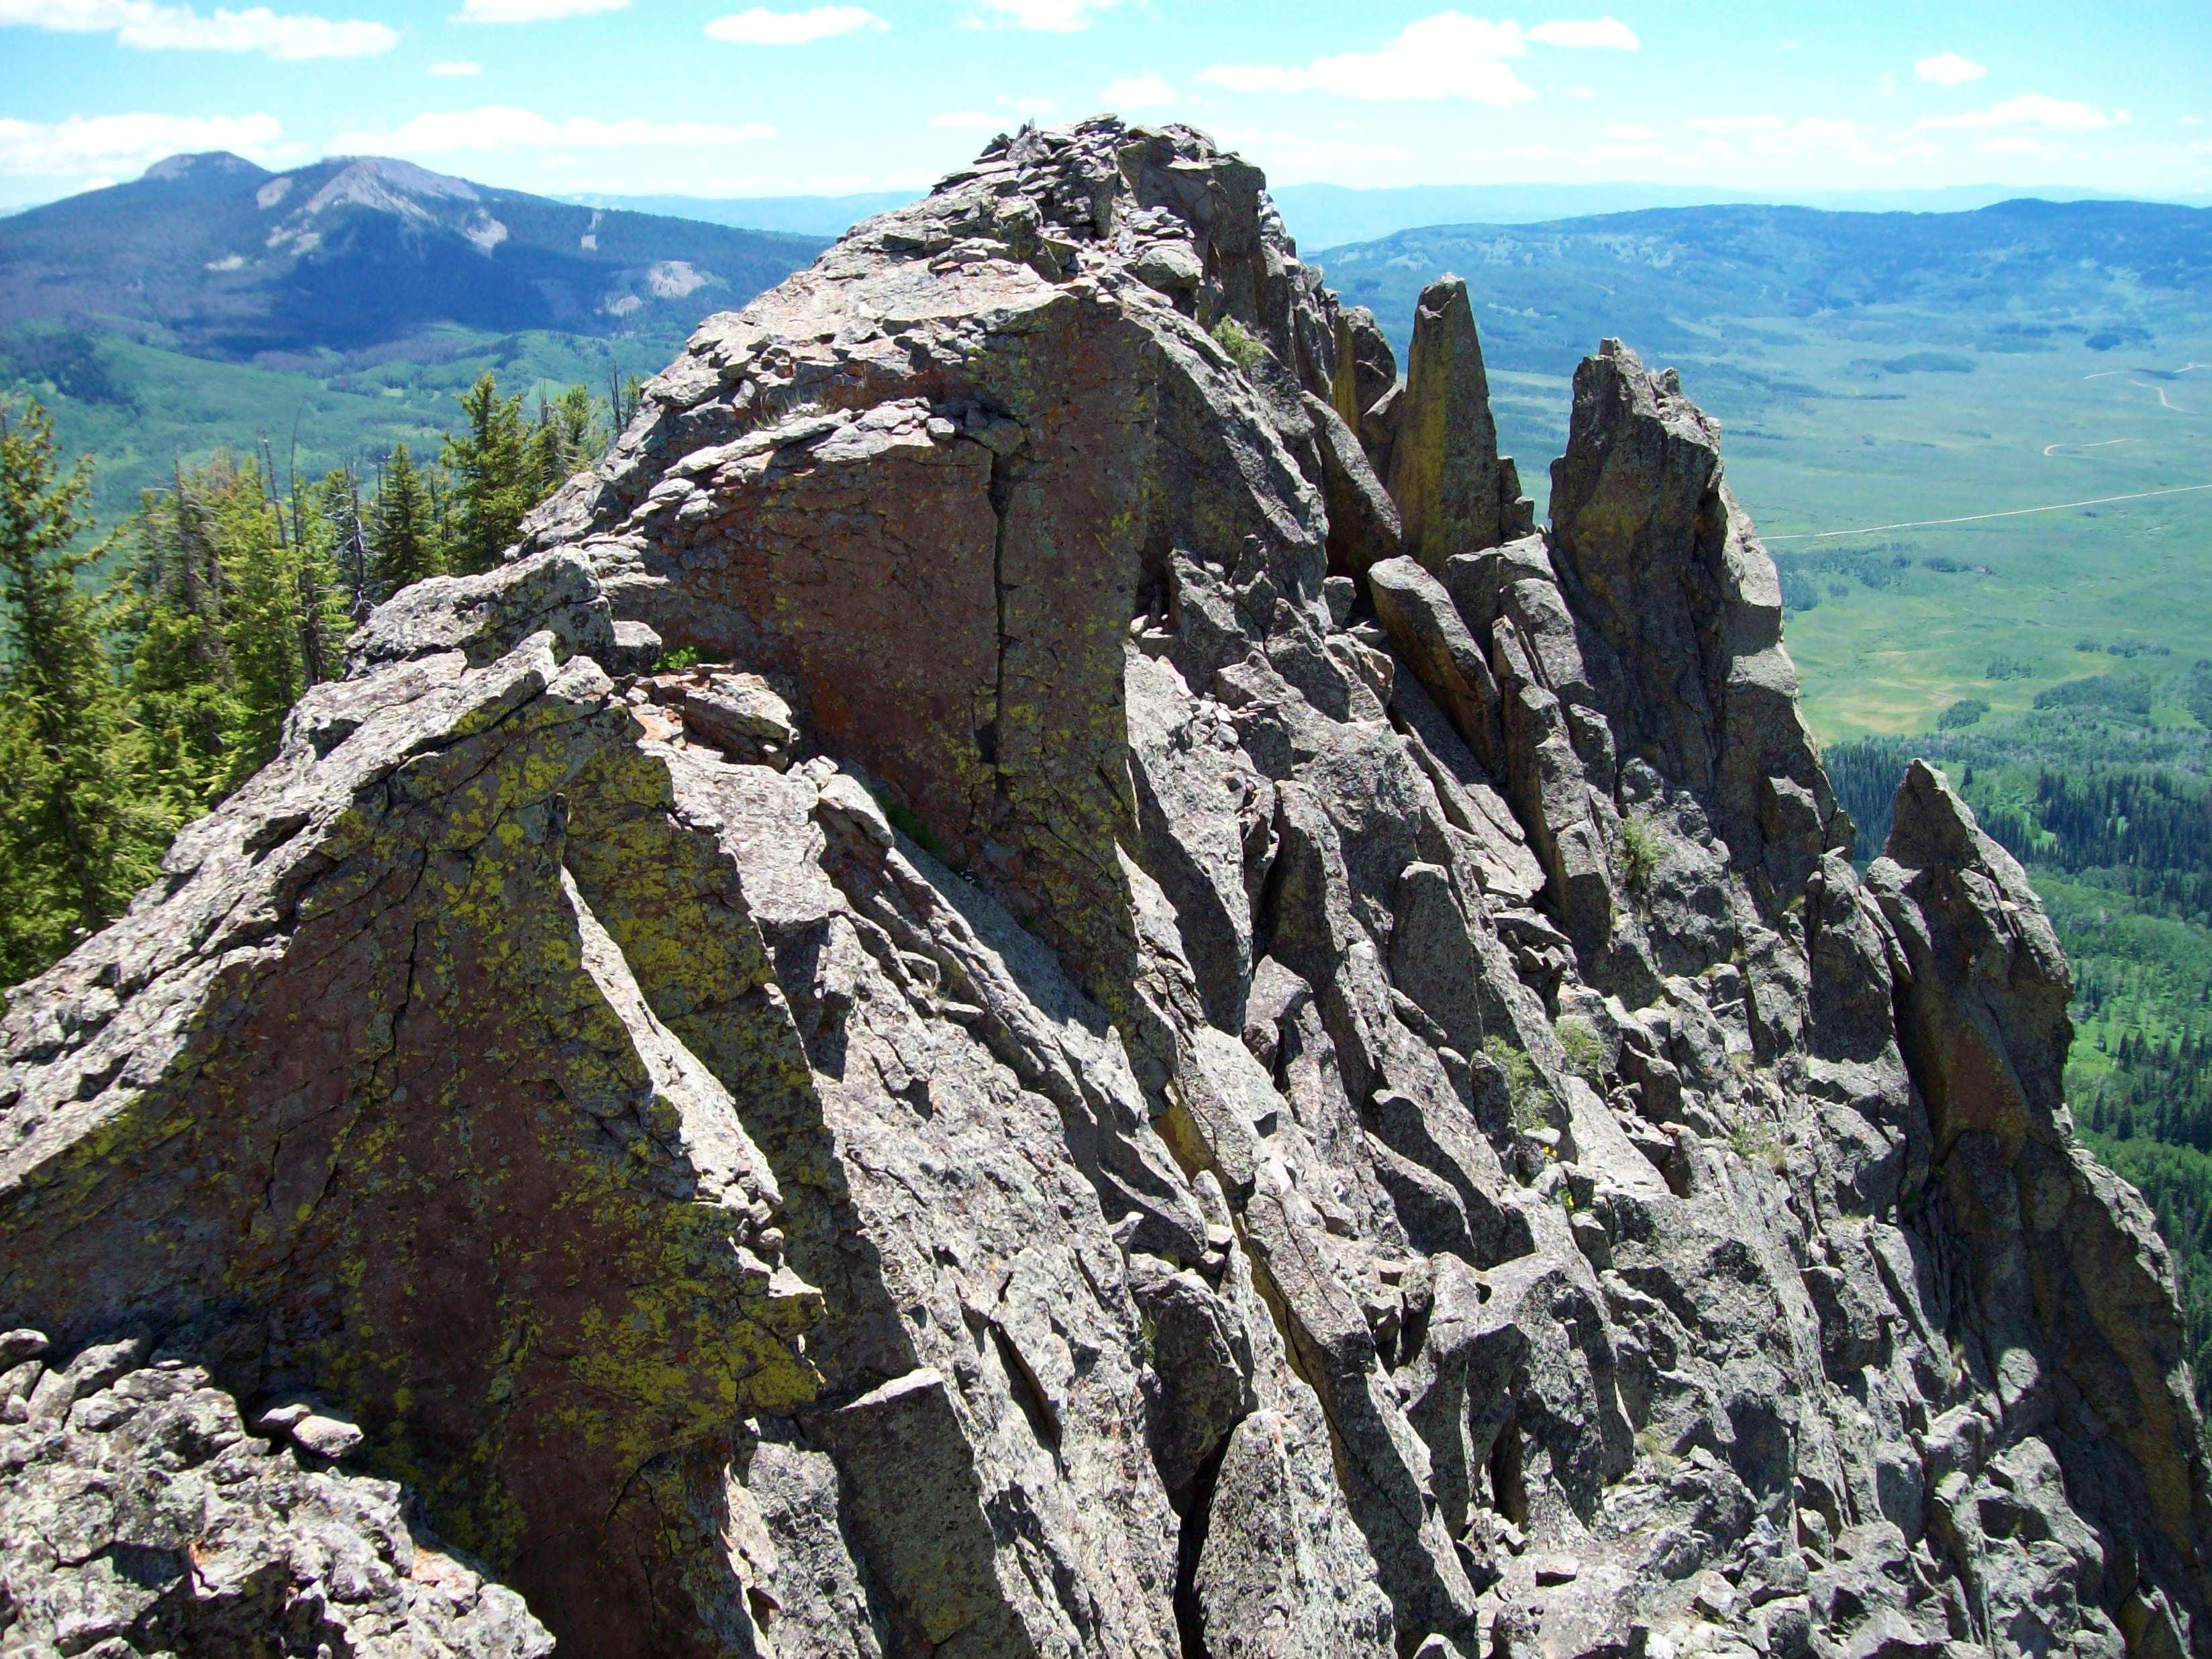 Saddle Mountain via Southeast Ridge